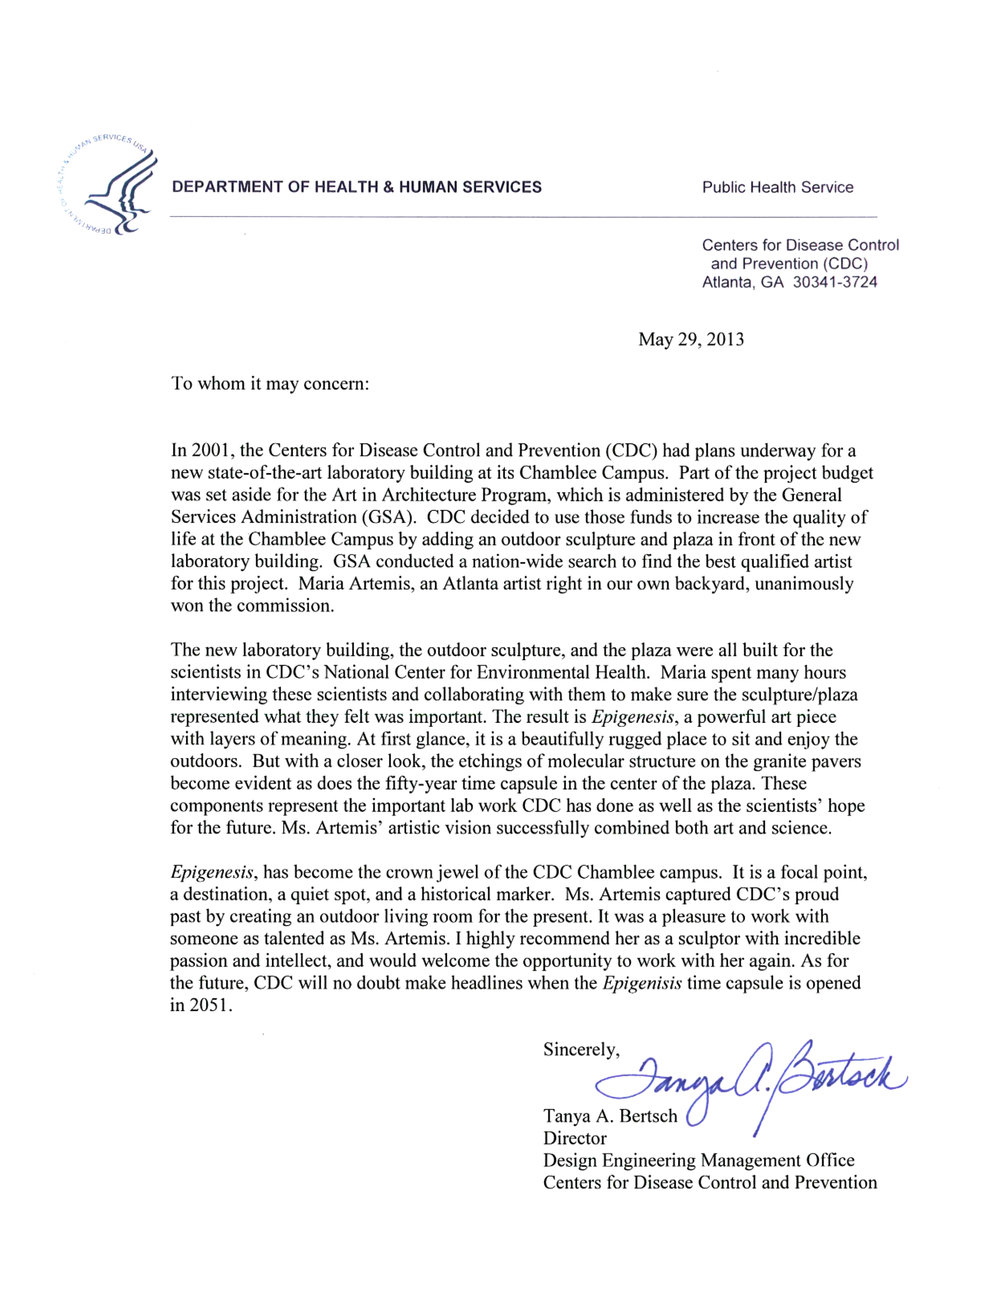 Tanya Bertsch Letter of Recommendation